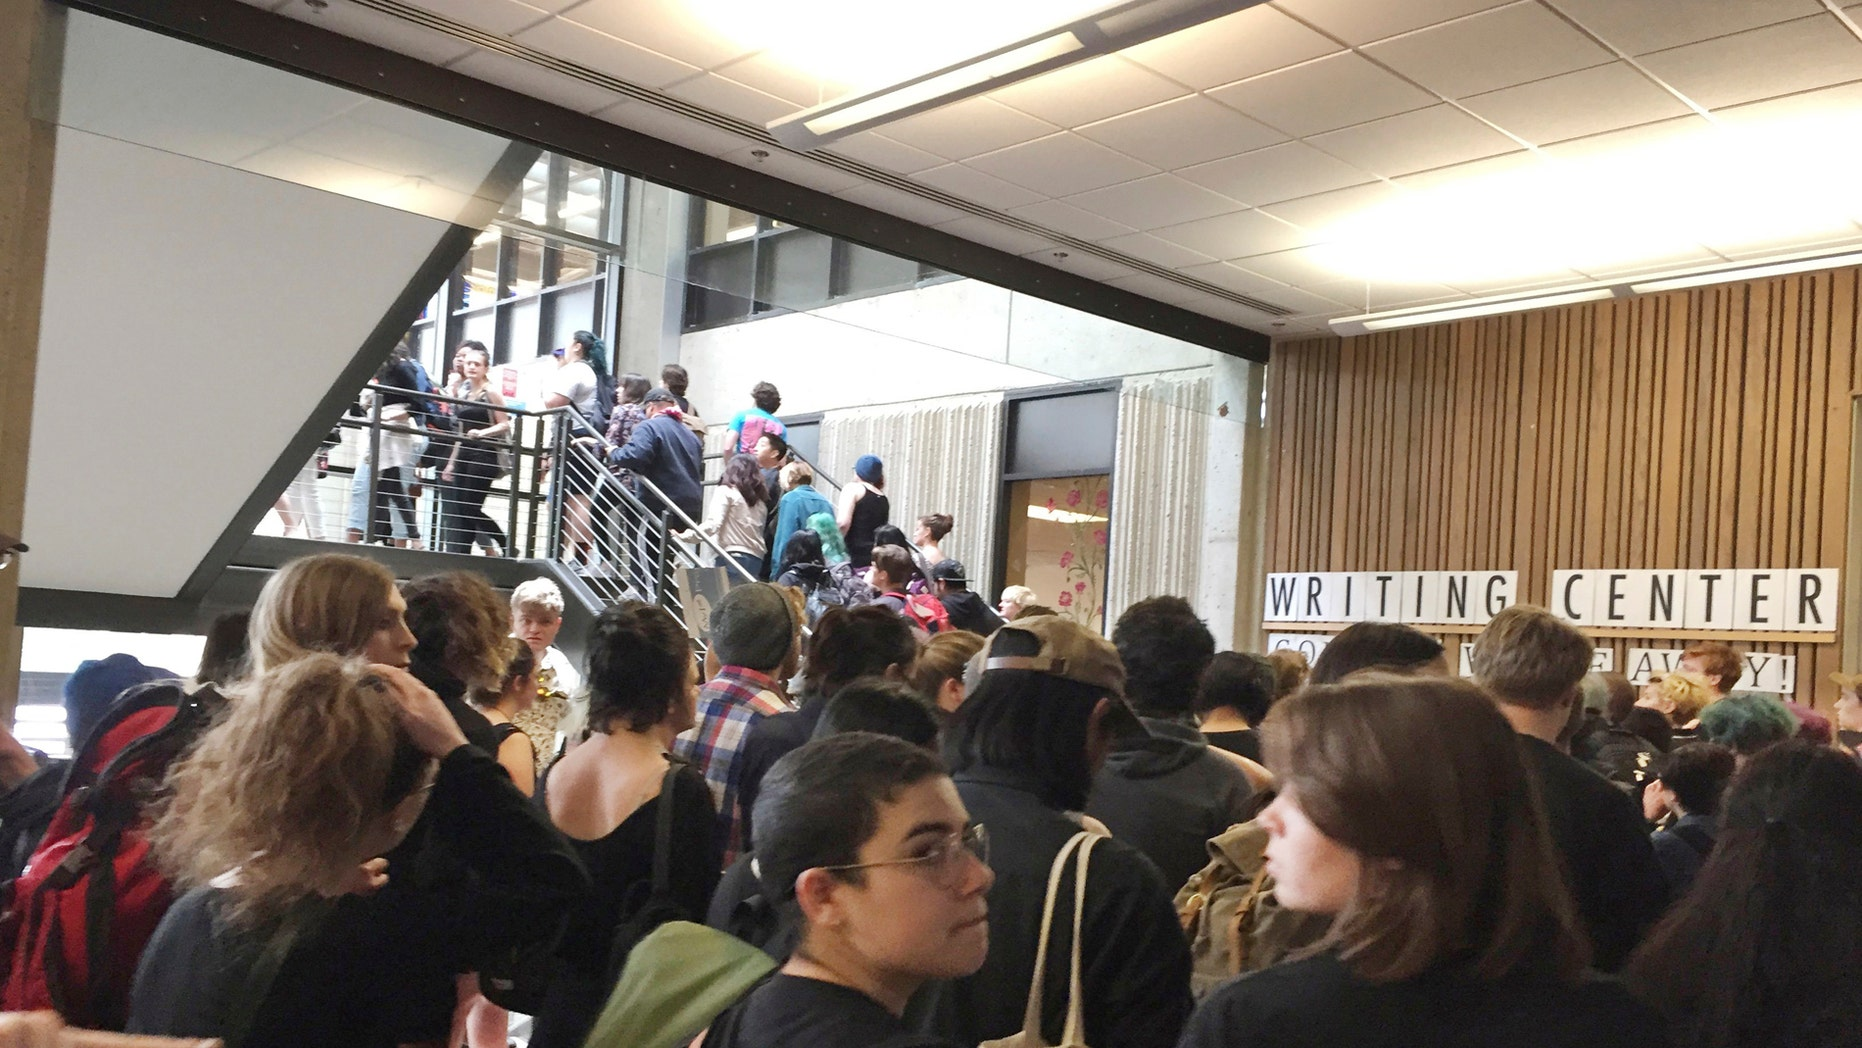 In this Wednesday, May 24, 2017, photo, after weeks of brewing racial tension on campus, hundreds of students at the Evergreen State College in Olympia, Wash., protest against the college administration and demanded change.